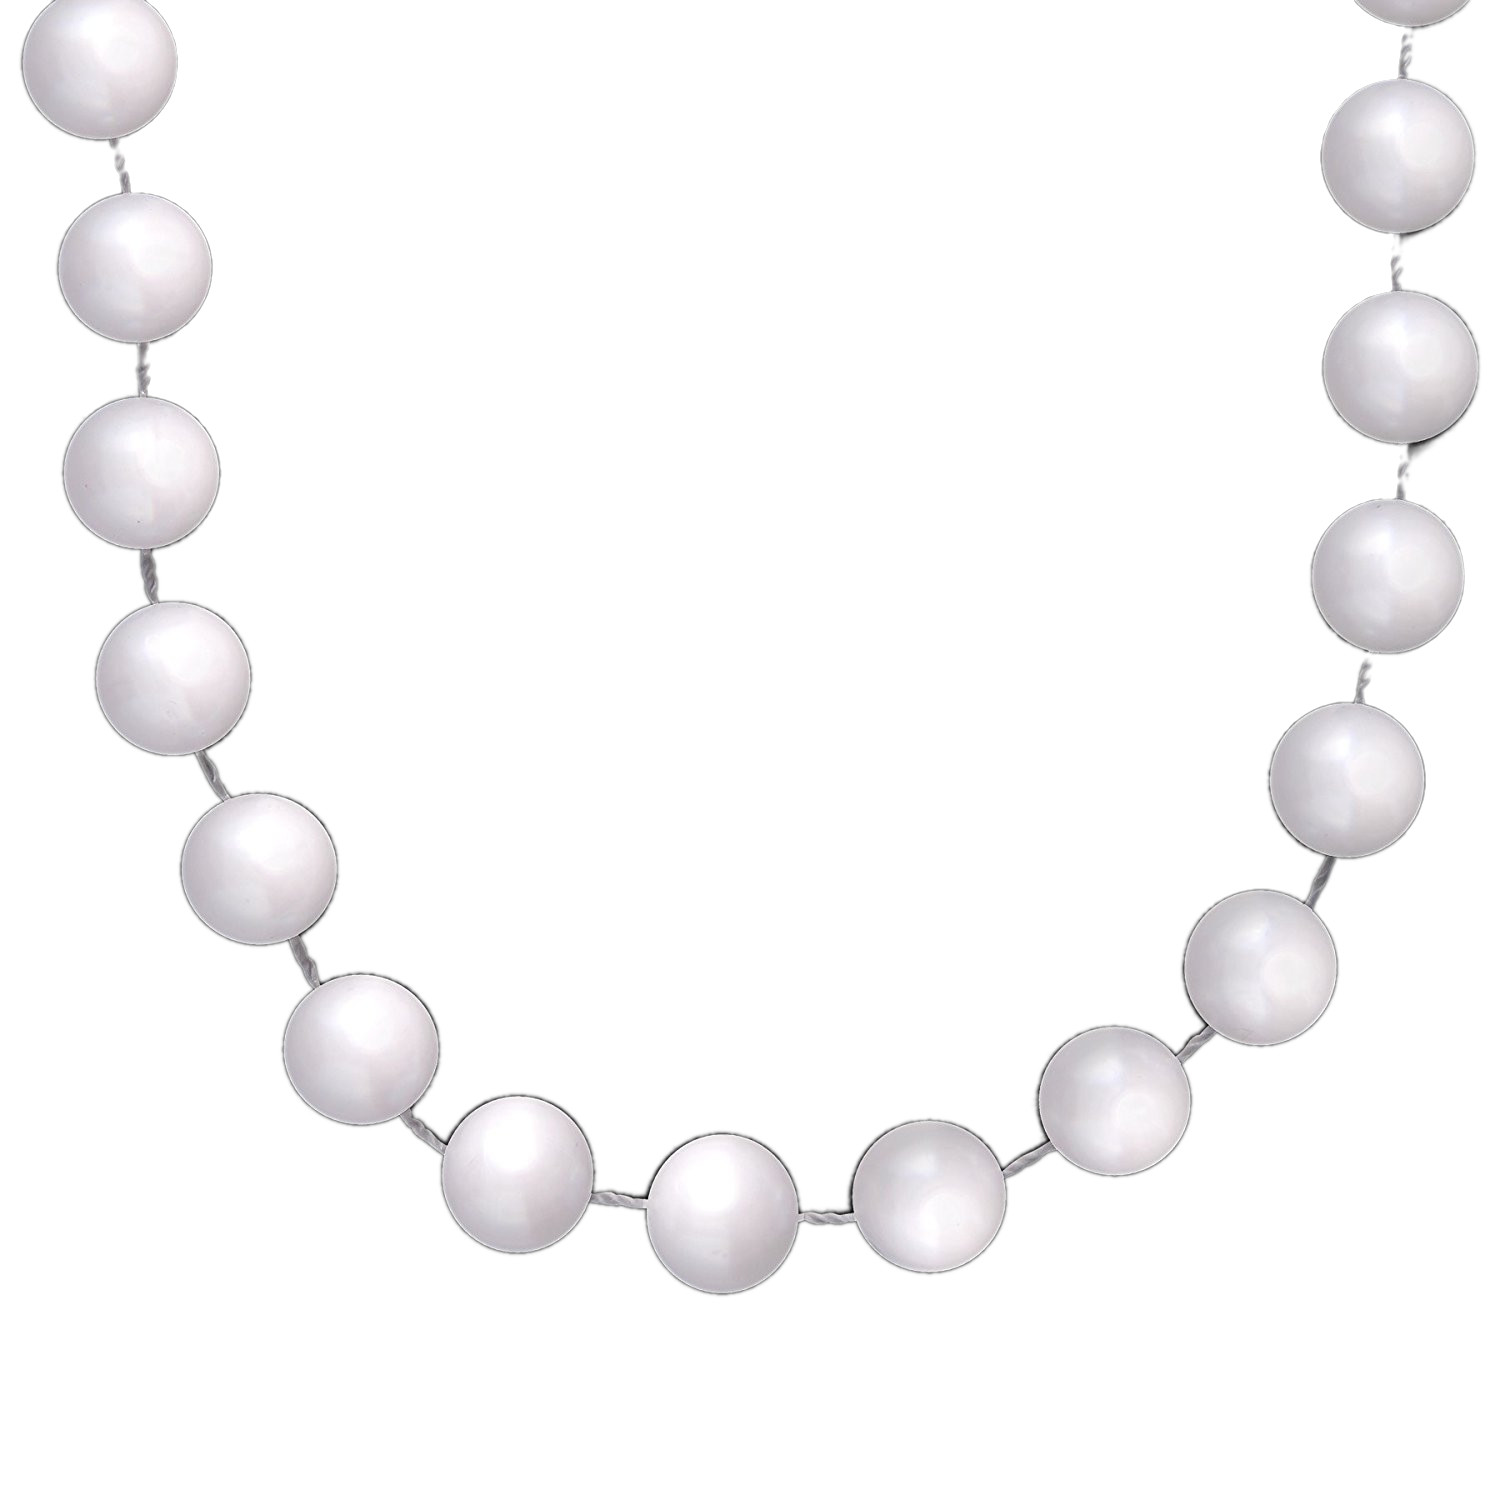 Faux Pearl Mermaid Beads Pack of 12 All Products